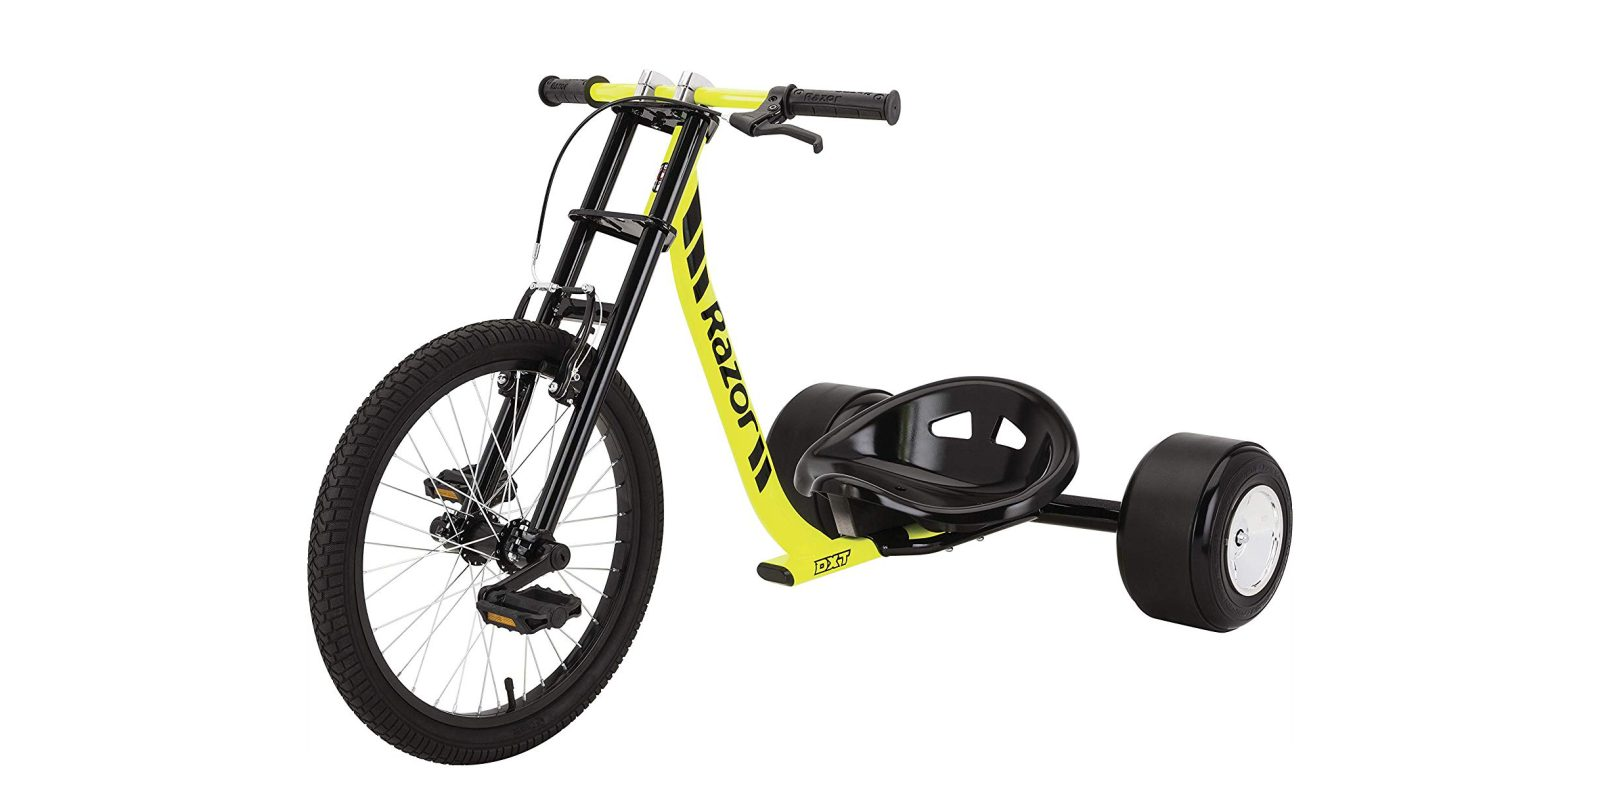 Amazon delivers the Razor DXT Drift Trike for $99 shipped (Reg. $149)